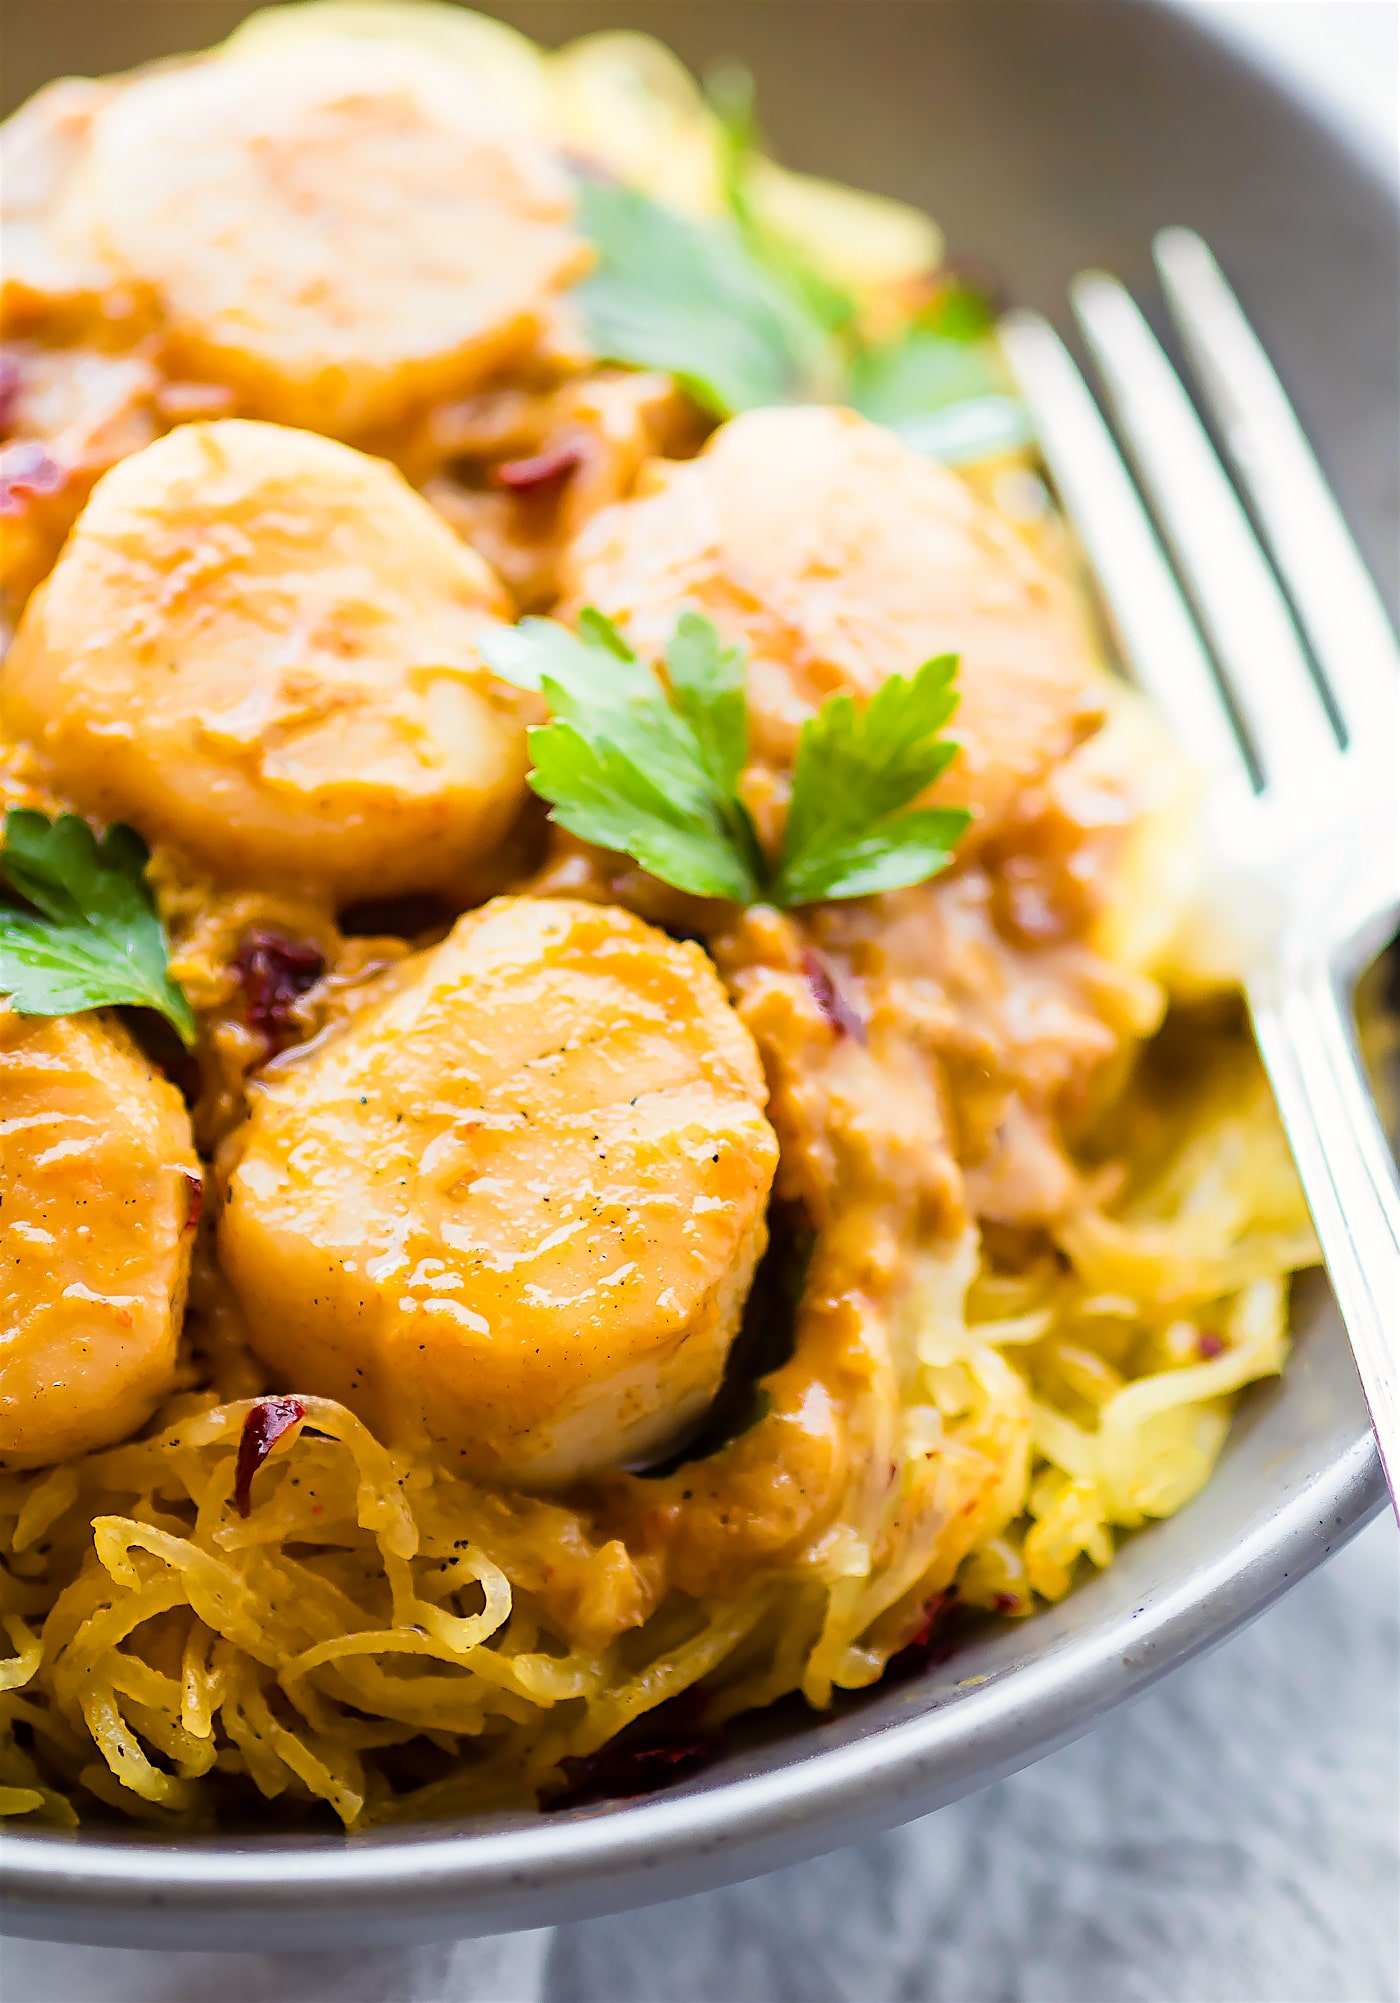 Spaghetti Squash Pasta makes for an easy paleo pasta alternative! This gluten free Seafood Pumpkin Spaghetti Squash Pasta is topped with a miso pumpkin sauce and buttery scallops. A healthy lower carb version of your favorite pasta dish. DIG IN!